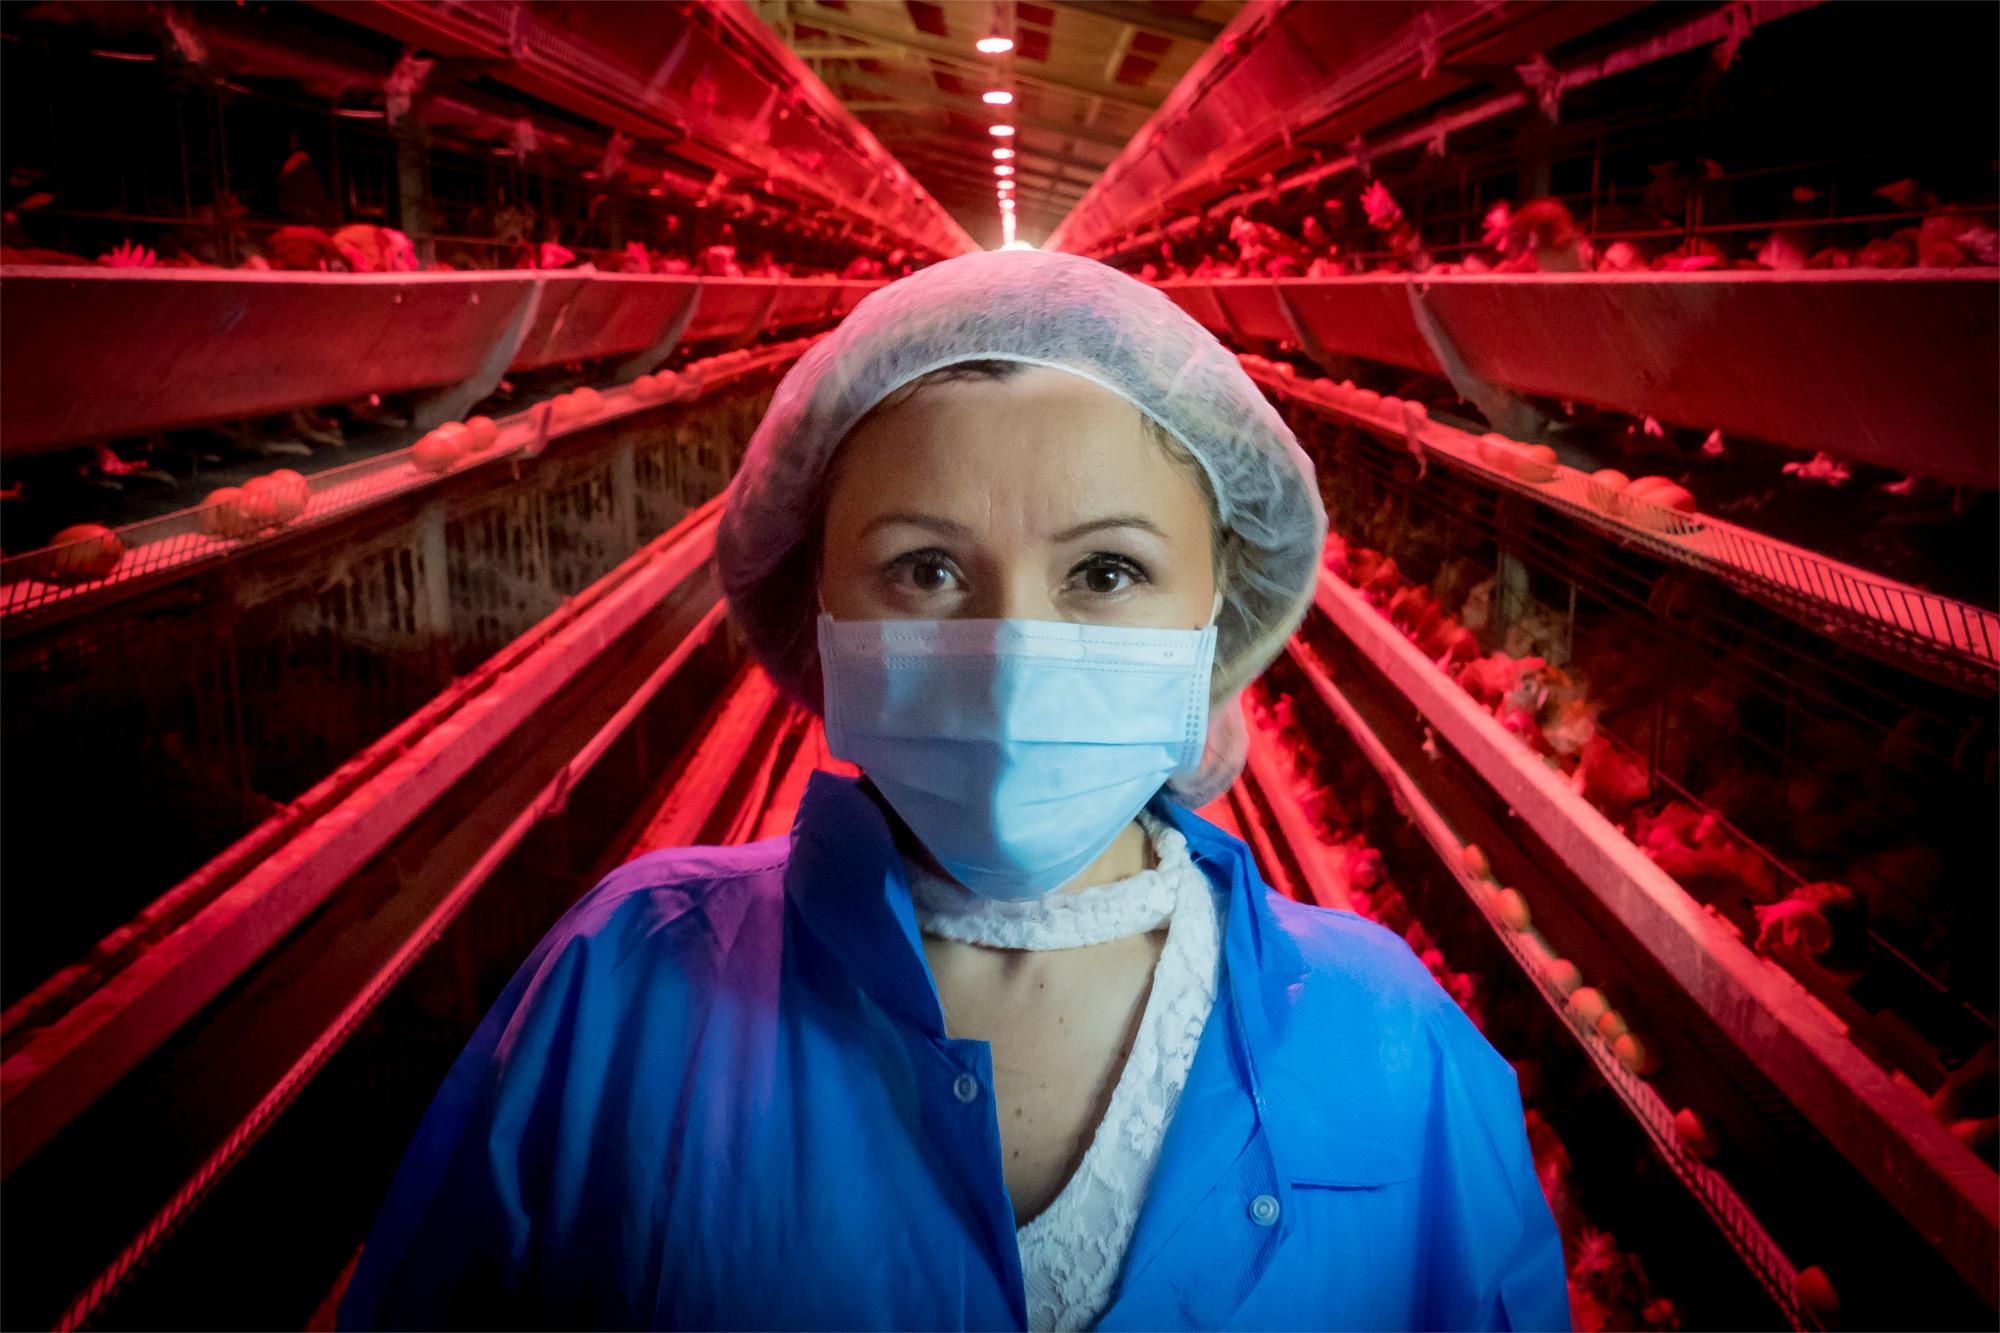 Janice Deynes operates an egg production facility in in San Sebastian, Puerto Rico that uses simulated sunlight to promote production. Reforms to livestock treatment in 2018 had both wins and losses. (Preston Keres/USDA)